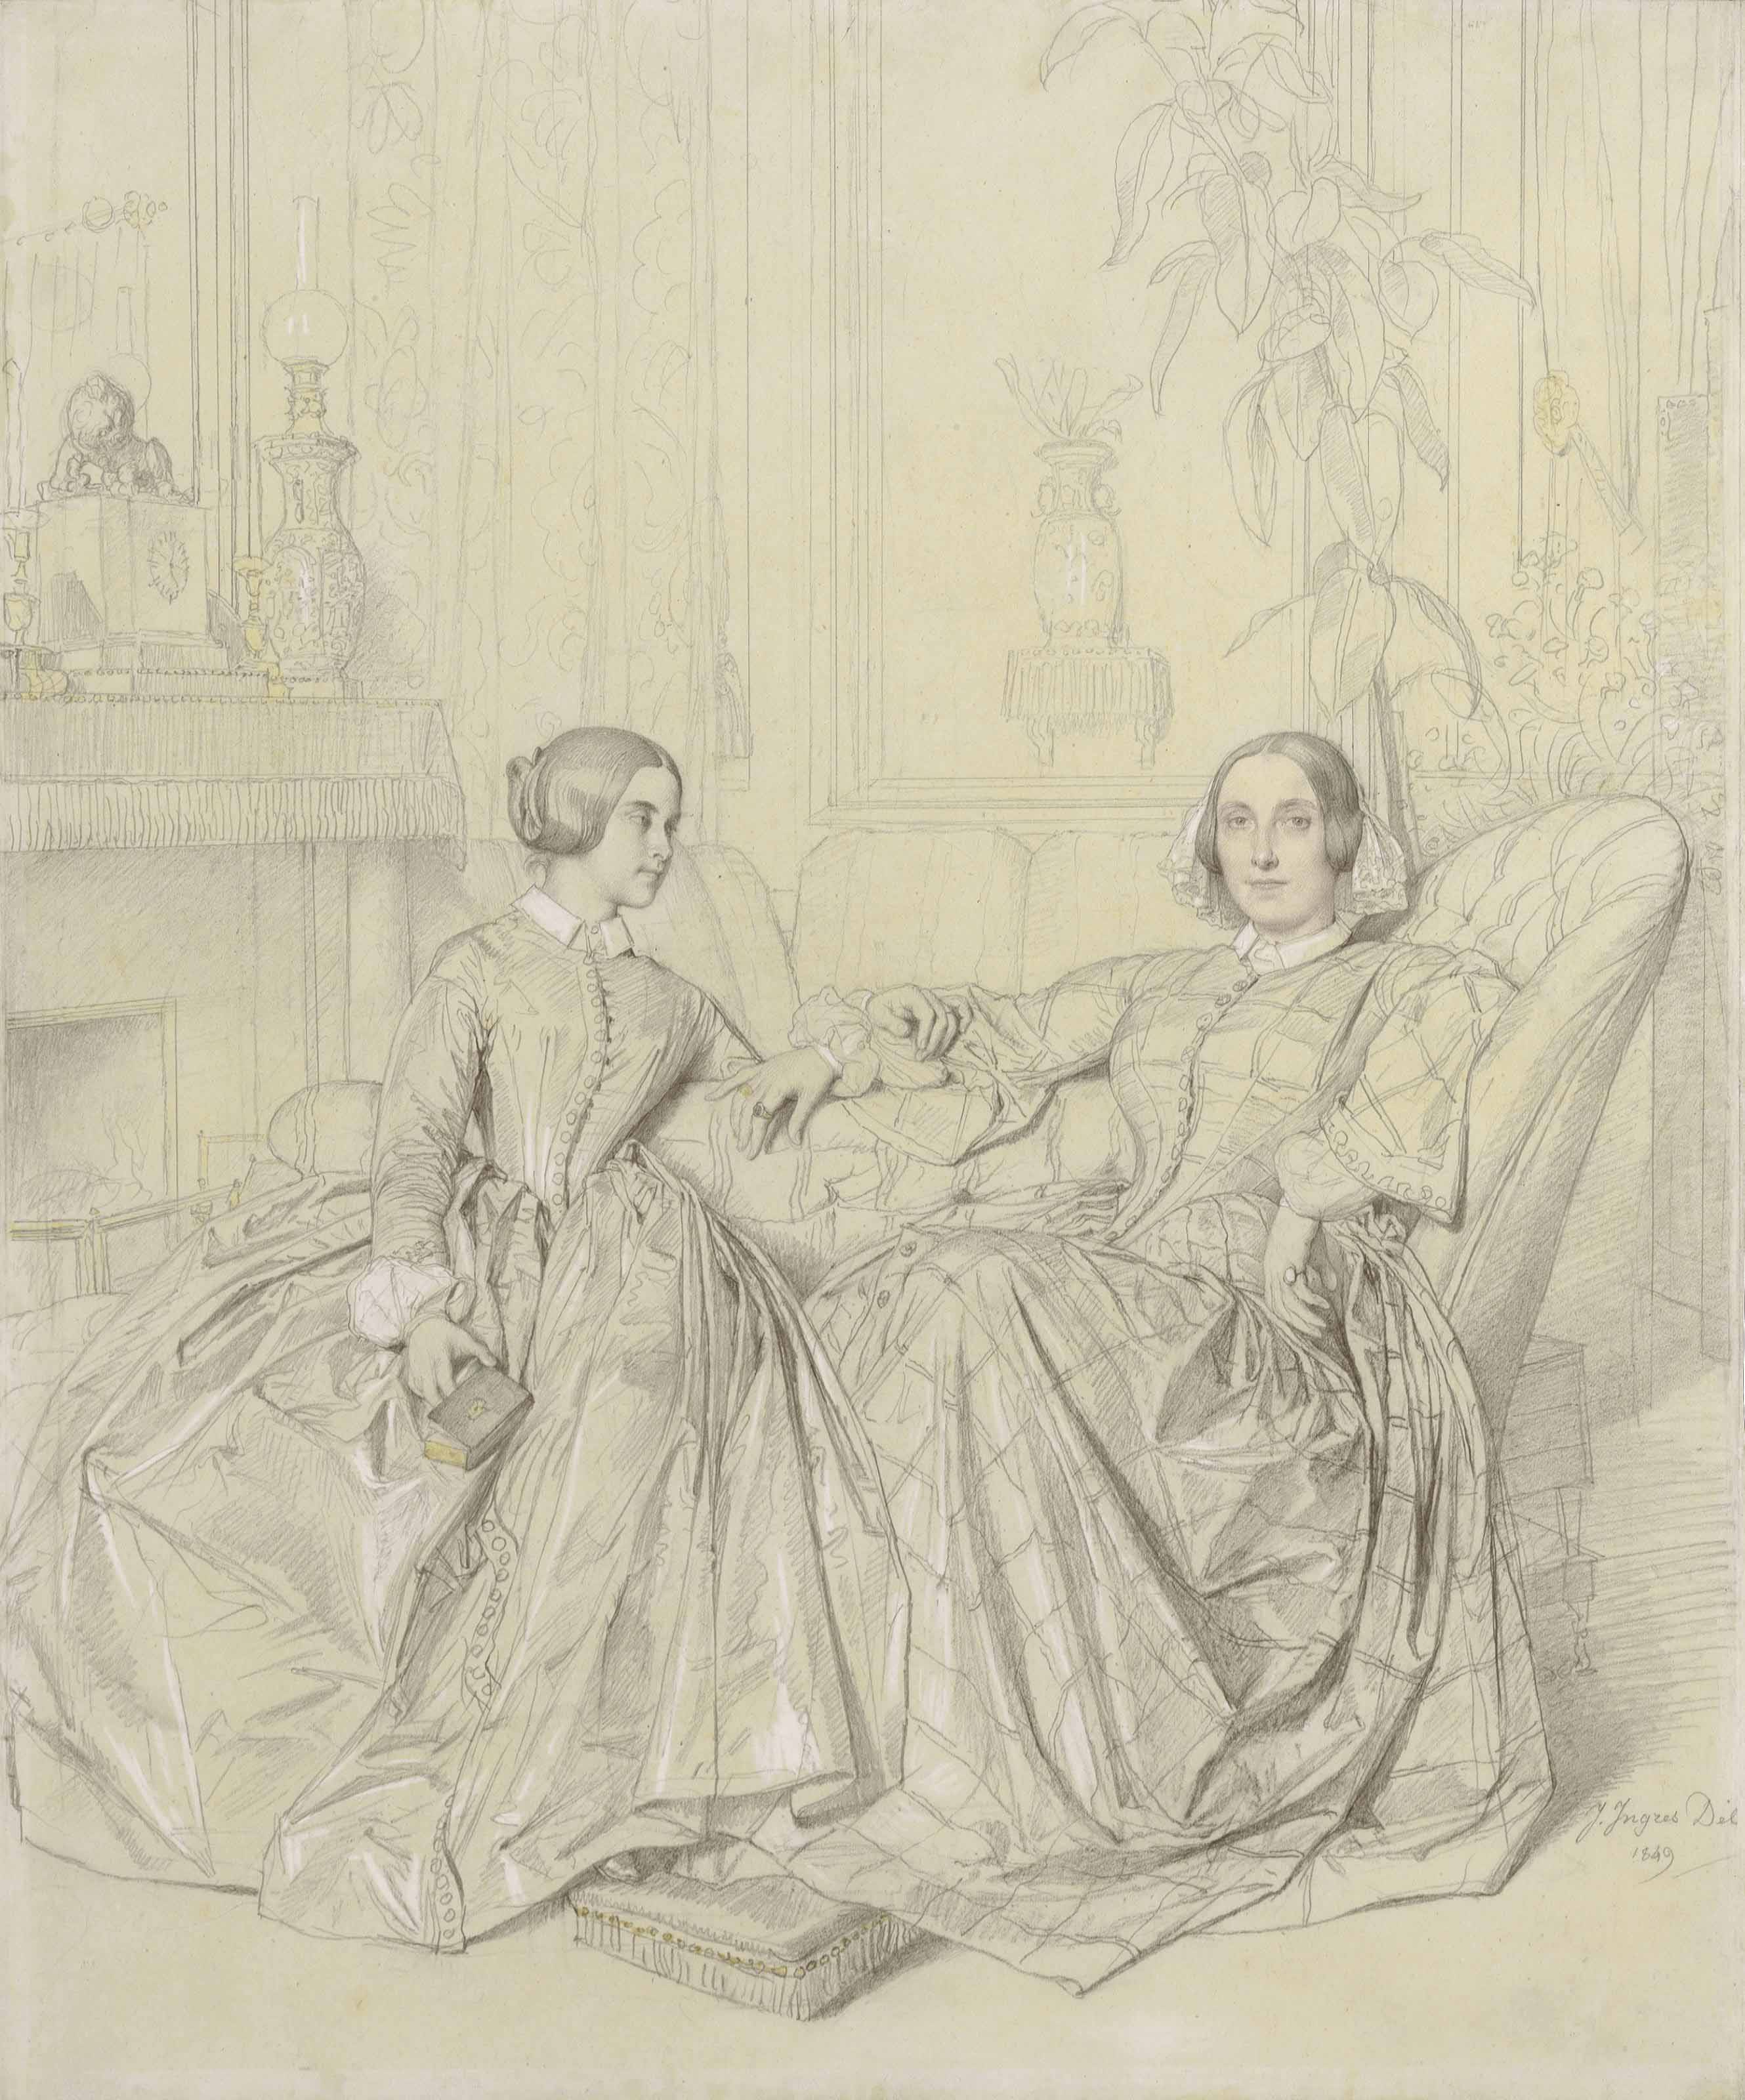 Comtesse Charles d'Agoult, née Marie d'Agoult, and her daughter Claire d'Agoult